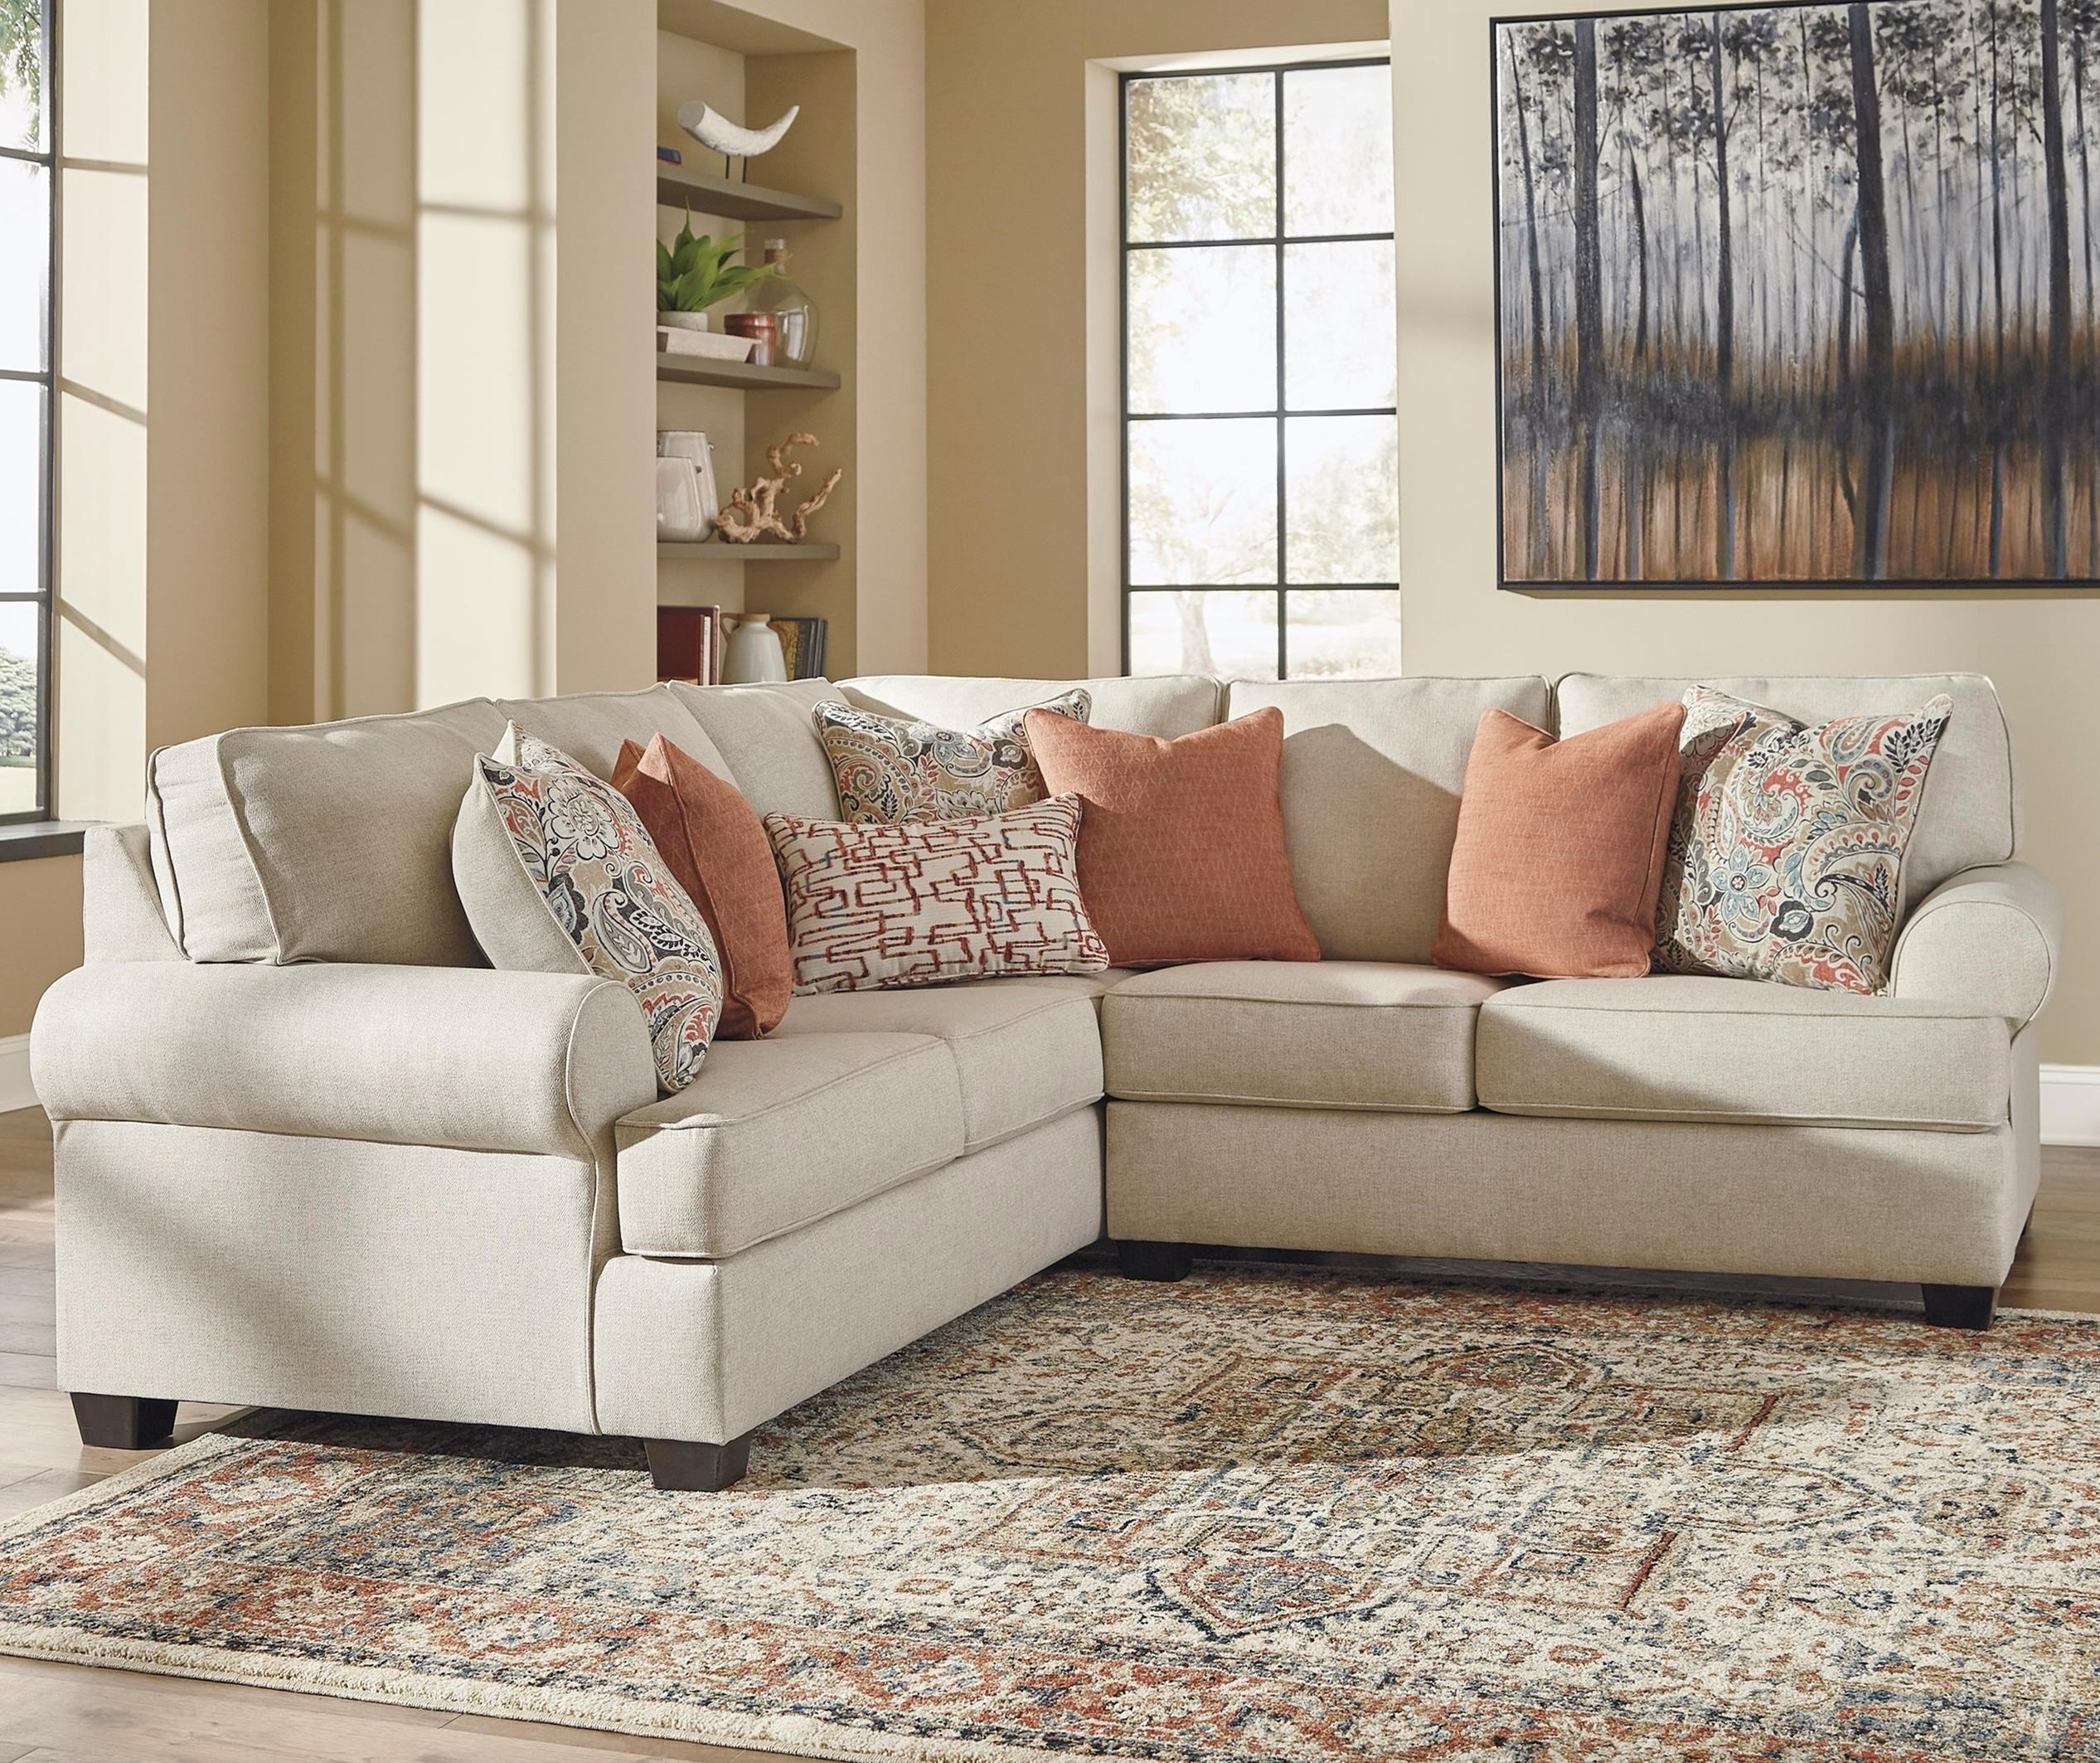 Amici 2-Piece Corner Sectional by Signature Design by Ashley at Beds N Stuff